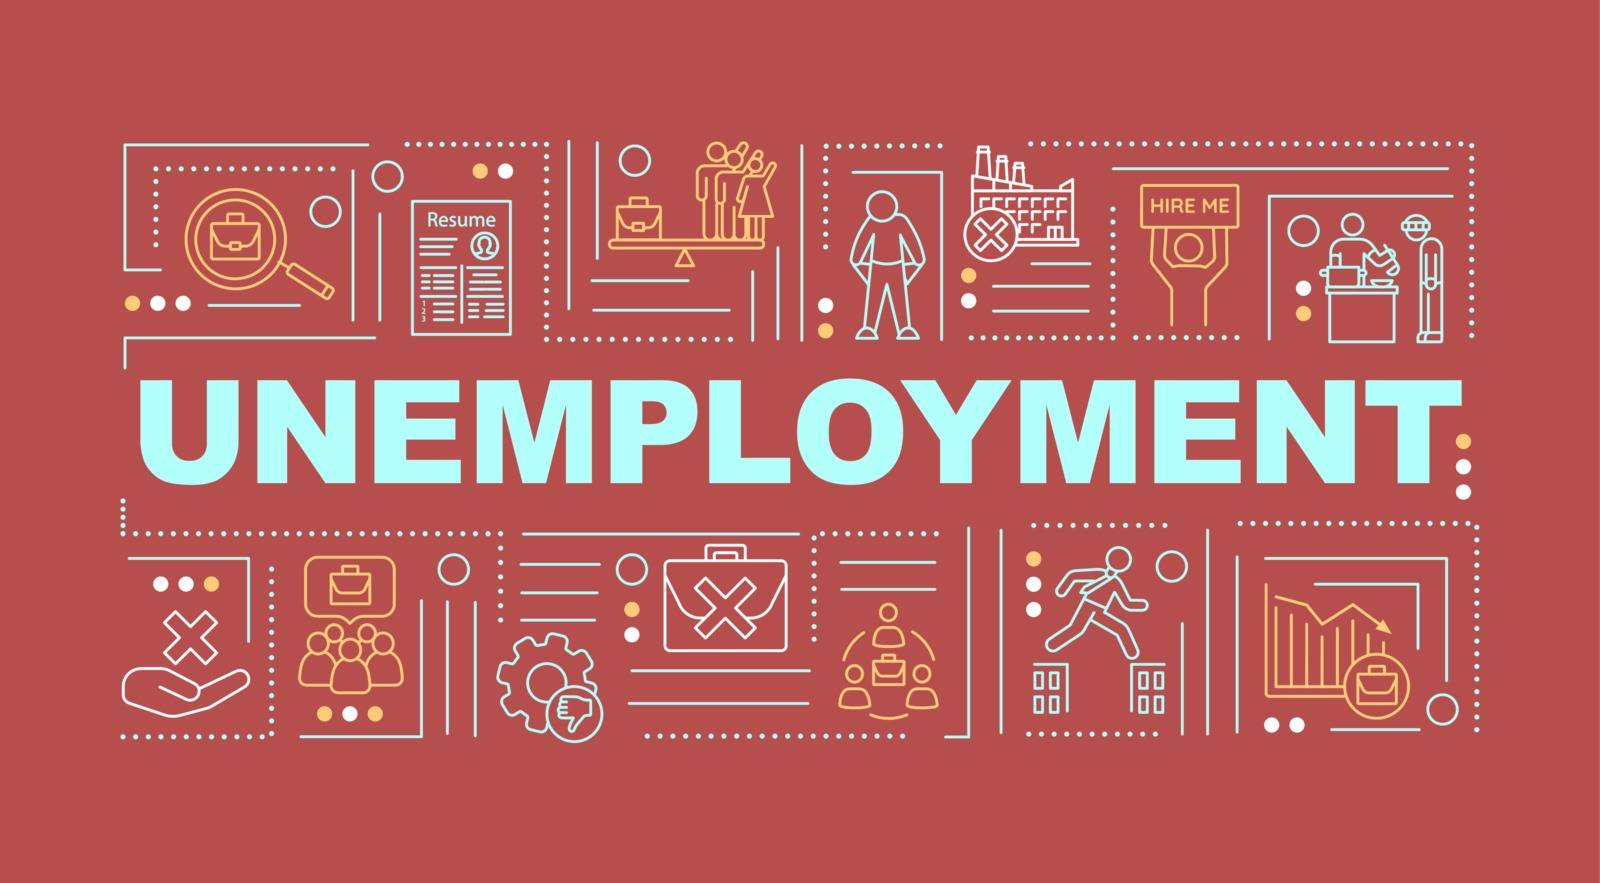 Unemployment word concepts banner. Joblessness problem infographics with linear icons on red background. Lack of jobs, employment issues. Isolated typography. Vector outline RGB color illustration